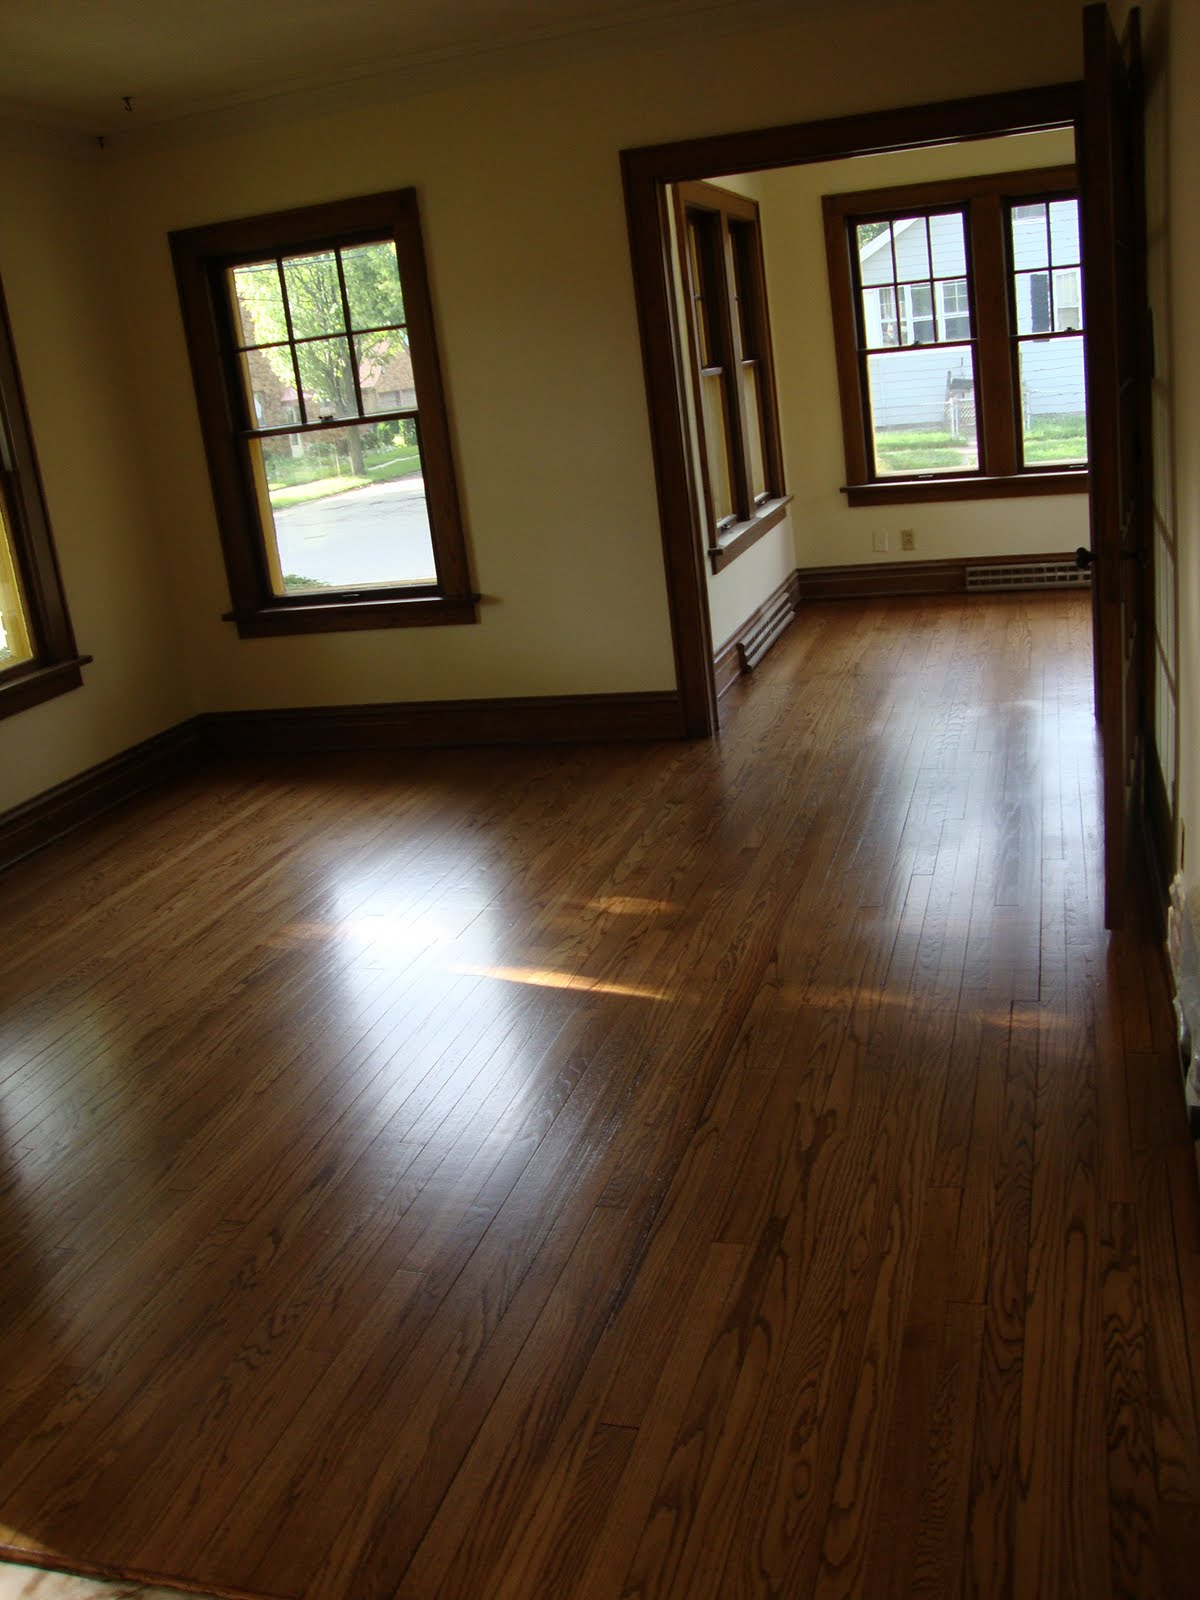 Dark Hardwood Floors with Wood Trim